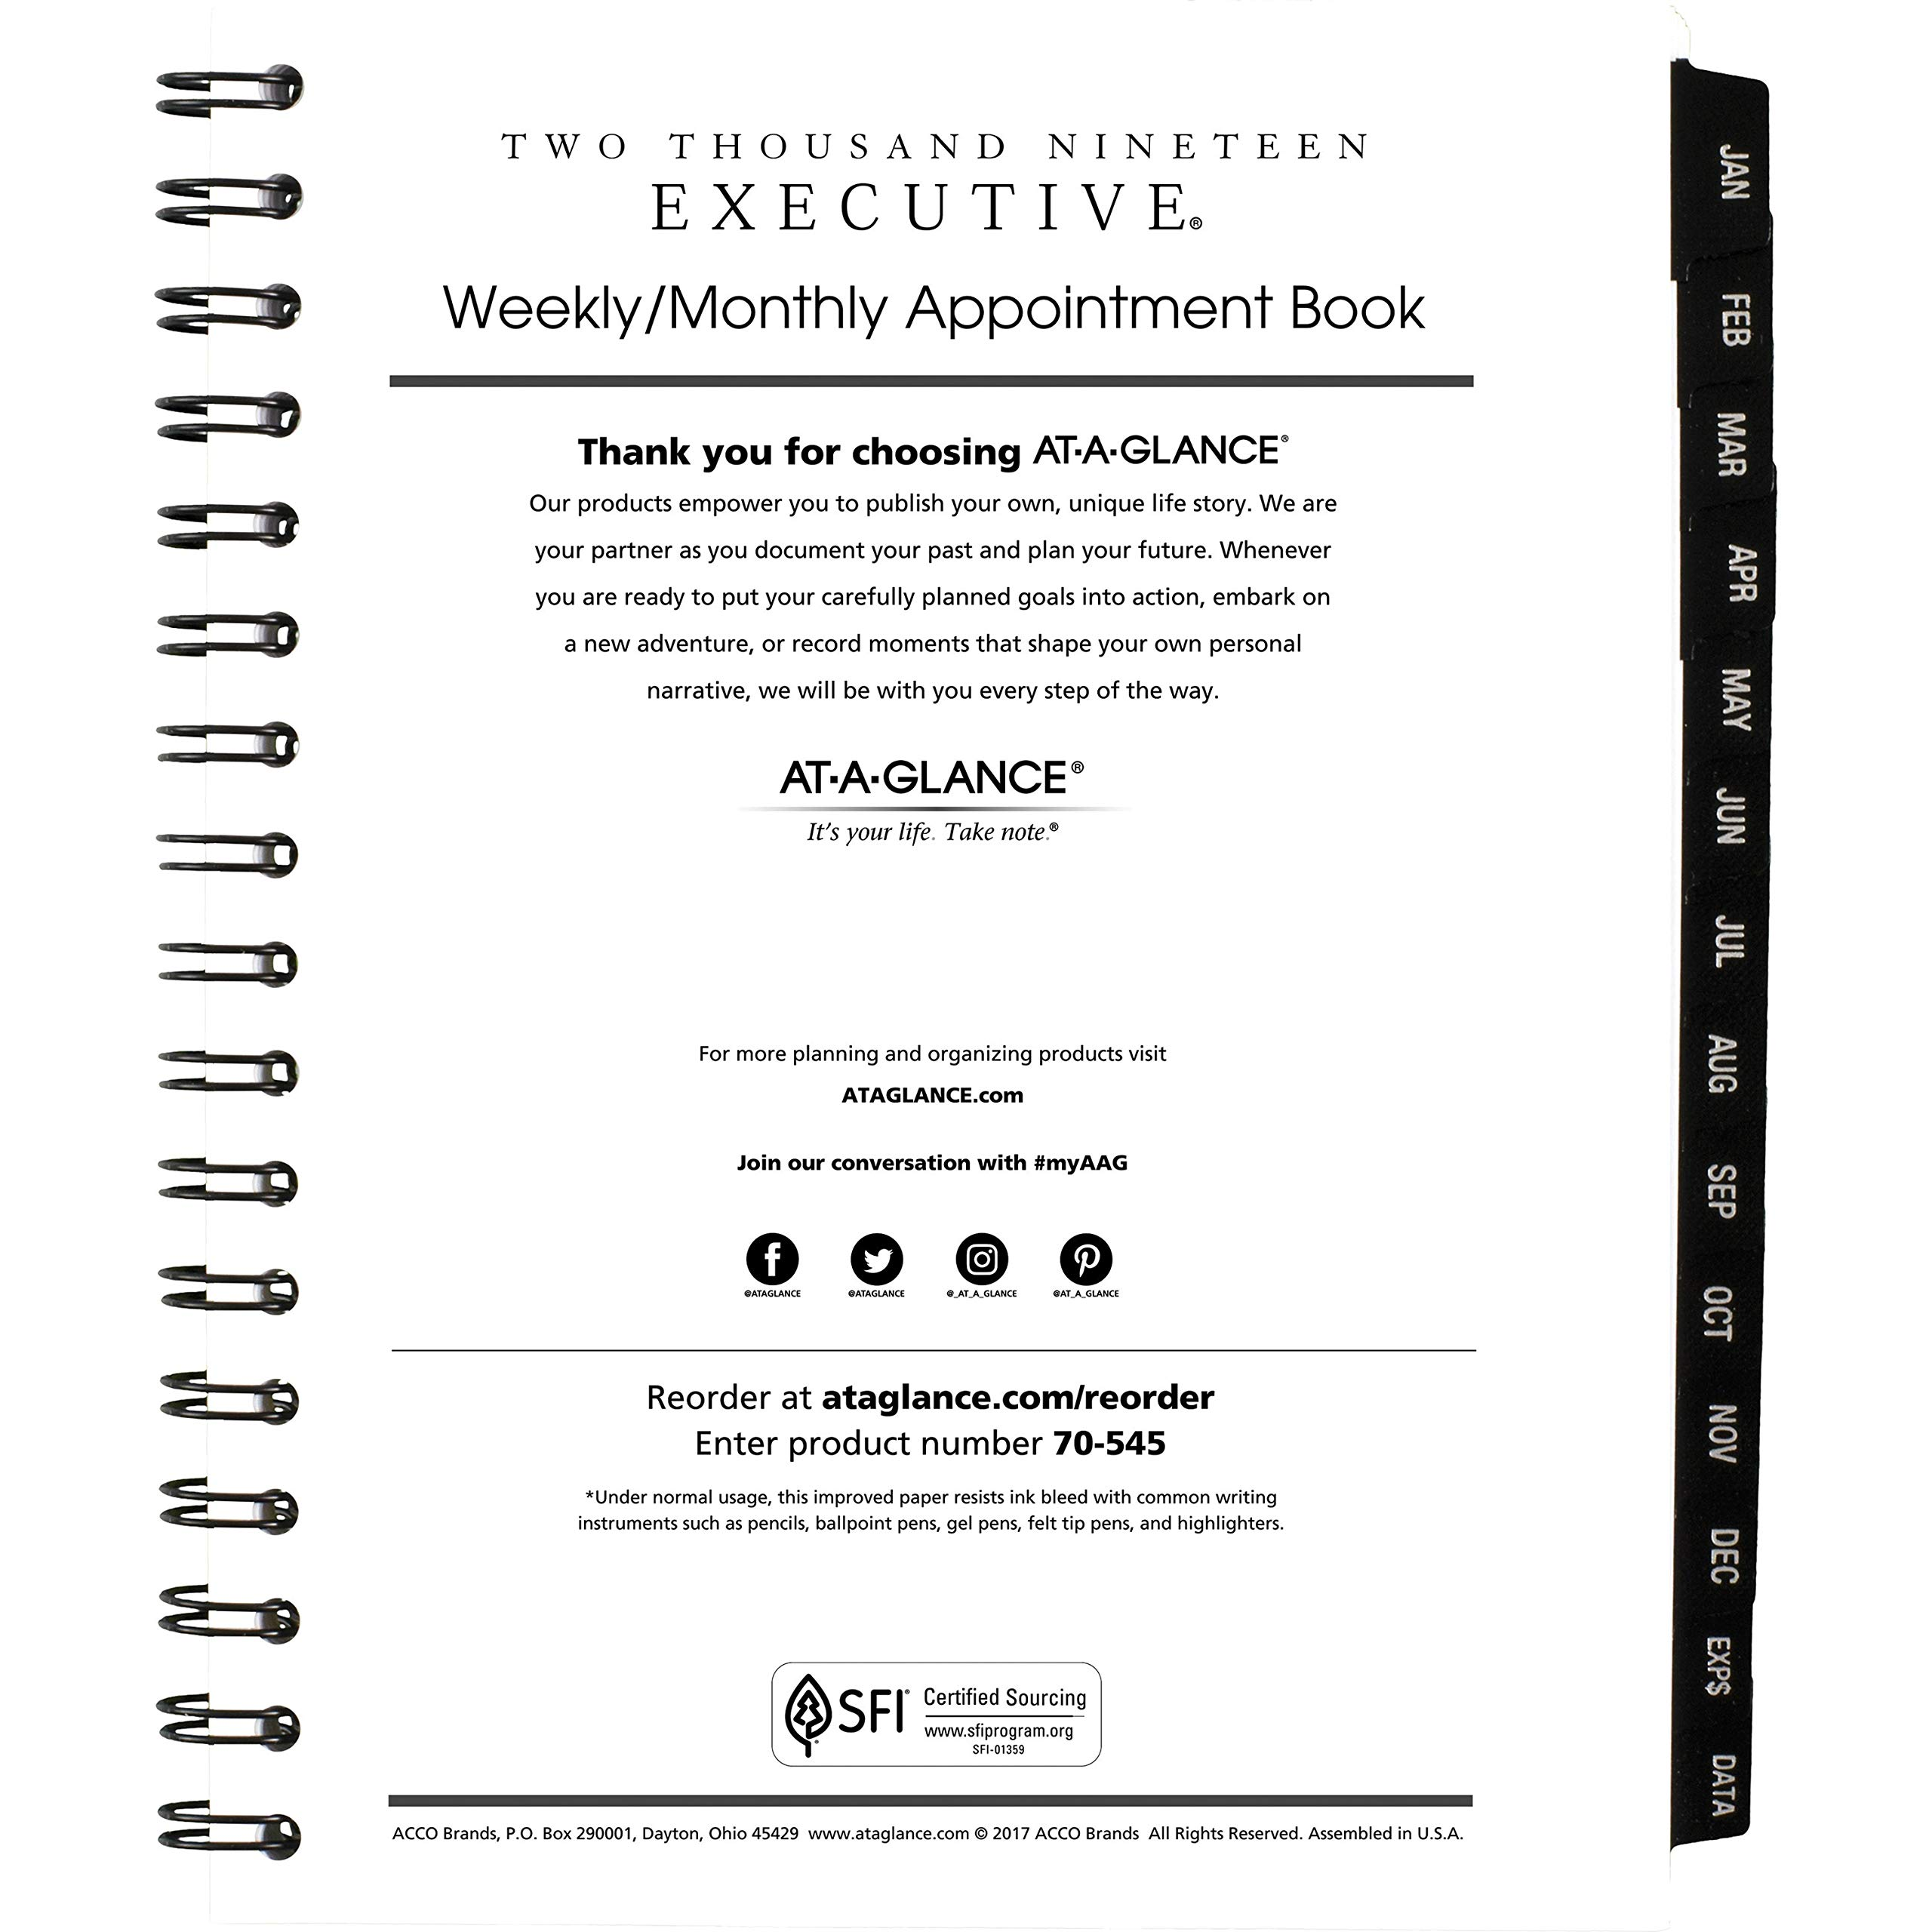 At-A-Glance, 7090810, Executive Weekly/Monthly Appointment Book Refill, 6 7/8'' x 8 3/4'', 2/Pack, Sold As 1 Pack by AT-A-GLANCE